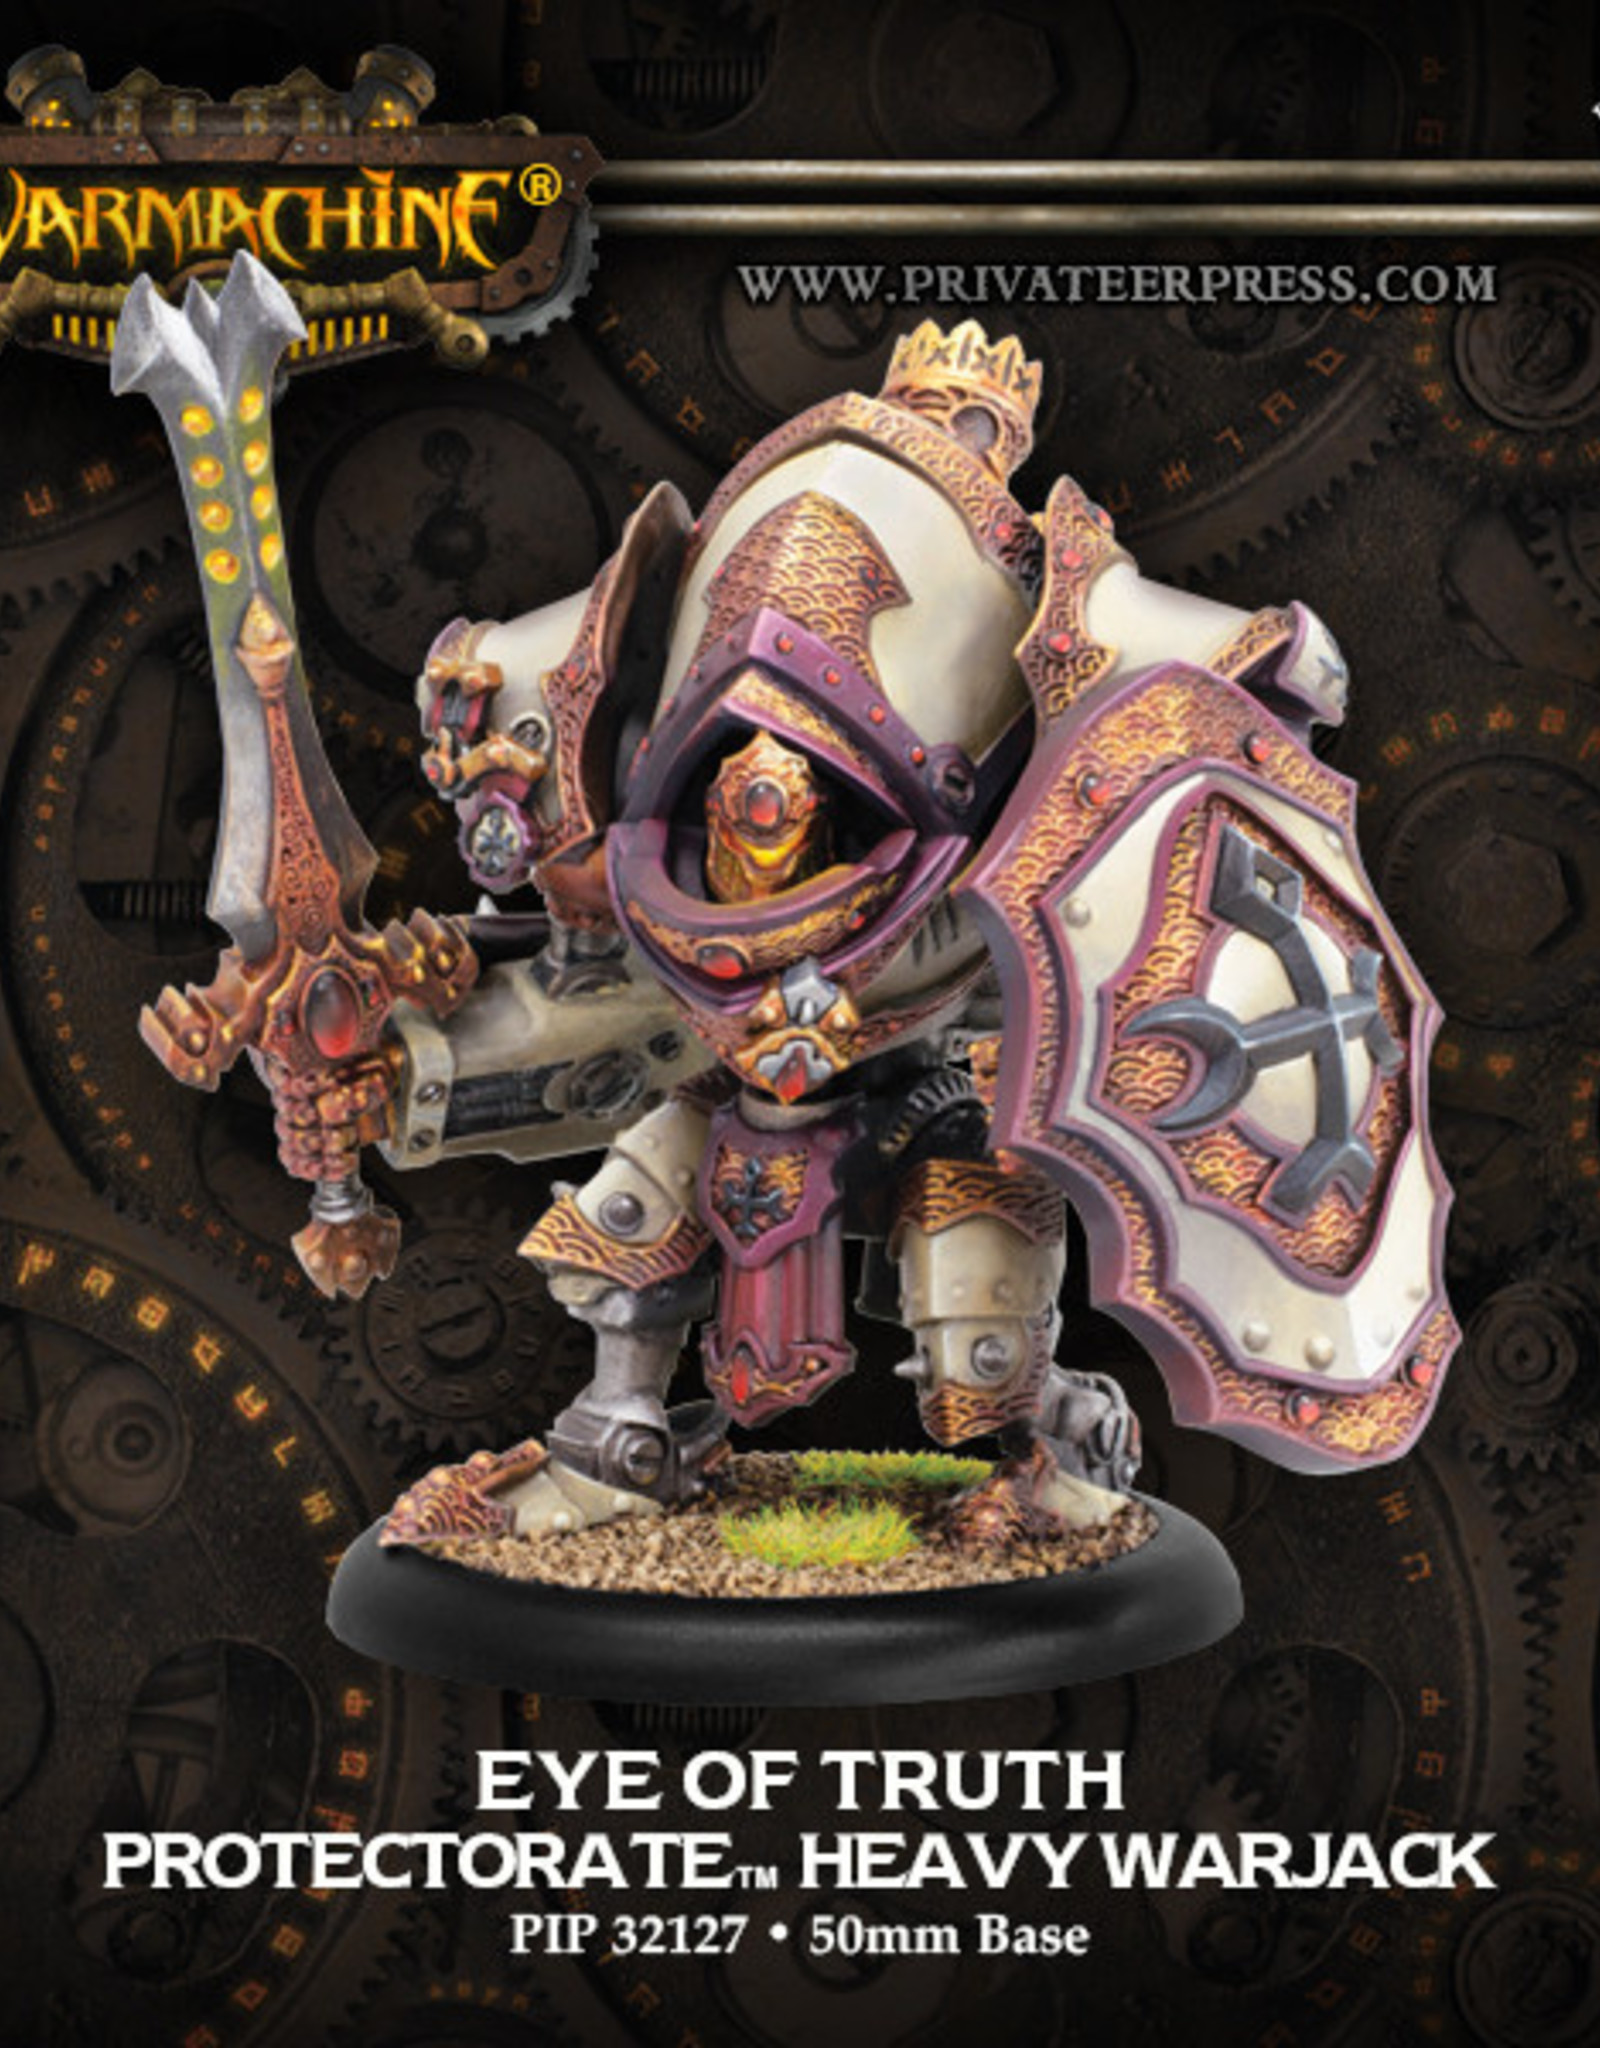 Warmachine Protectorate - Eye of Truth